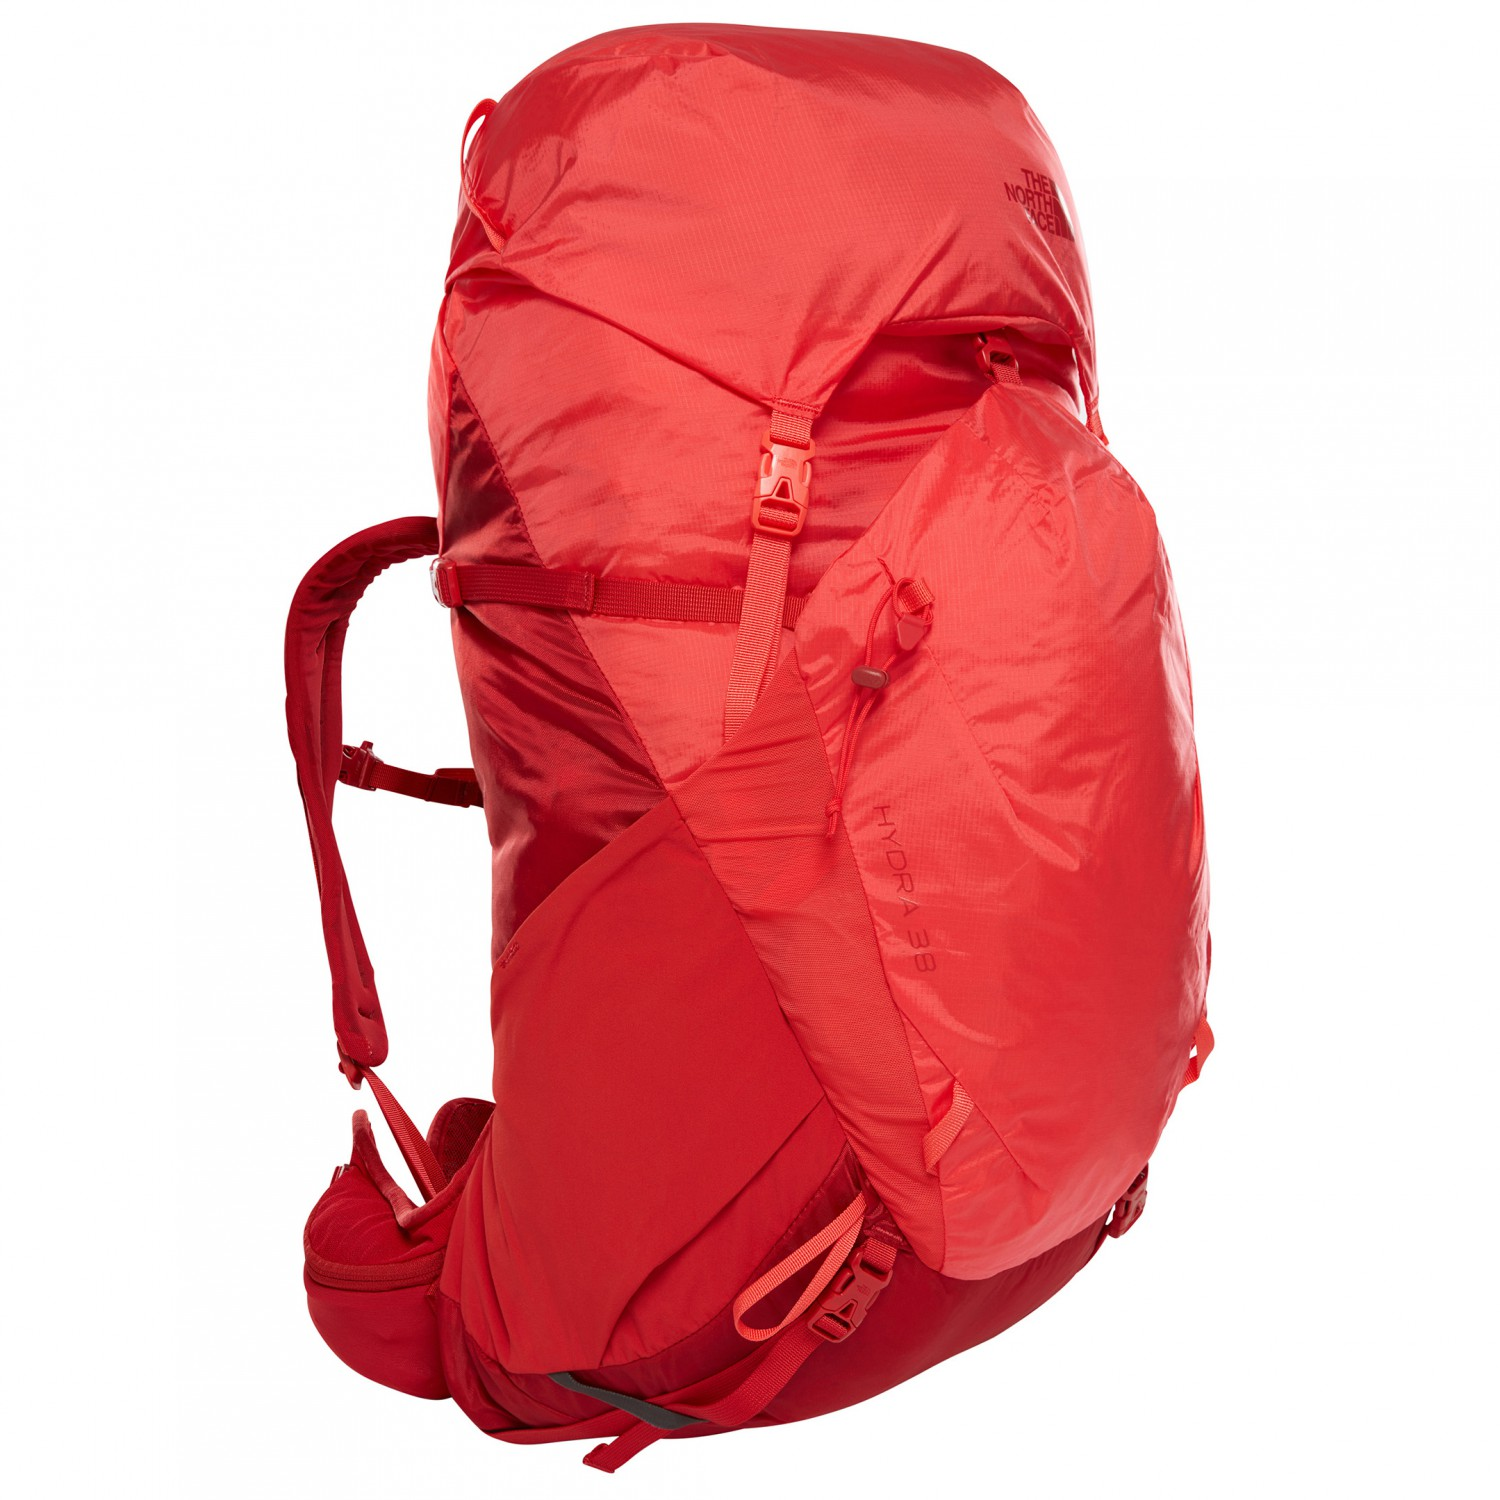 4a3e5240ac The North Face - Women's Hydra 38 RC - Sac à dos de randonnée ...